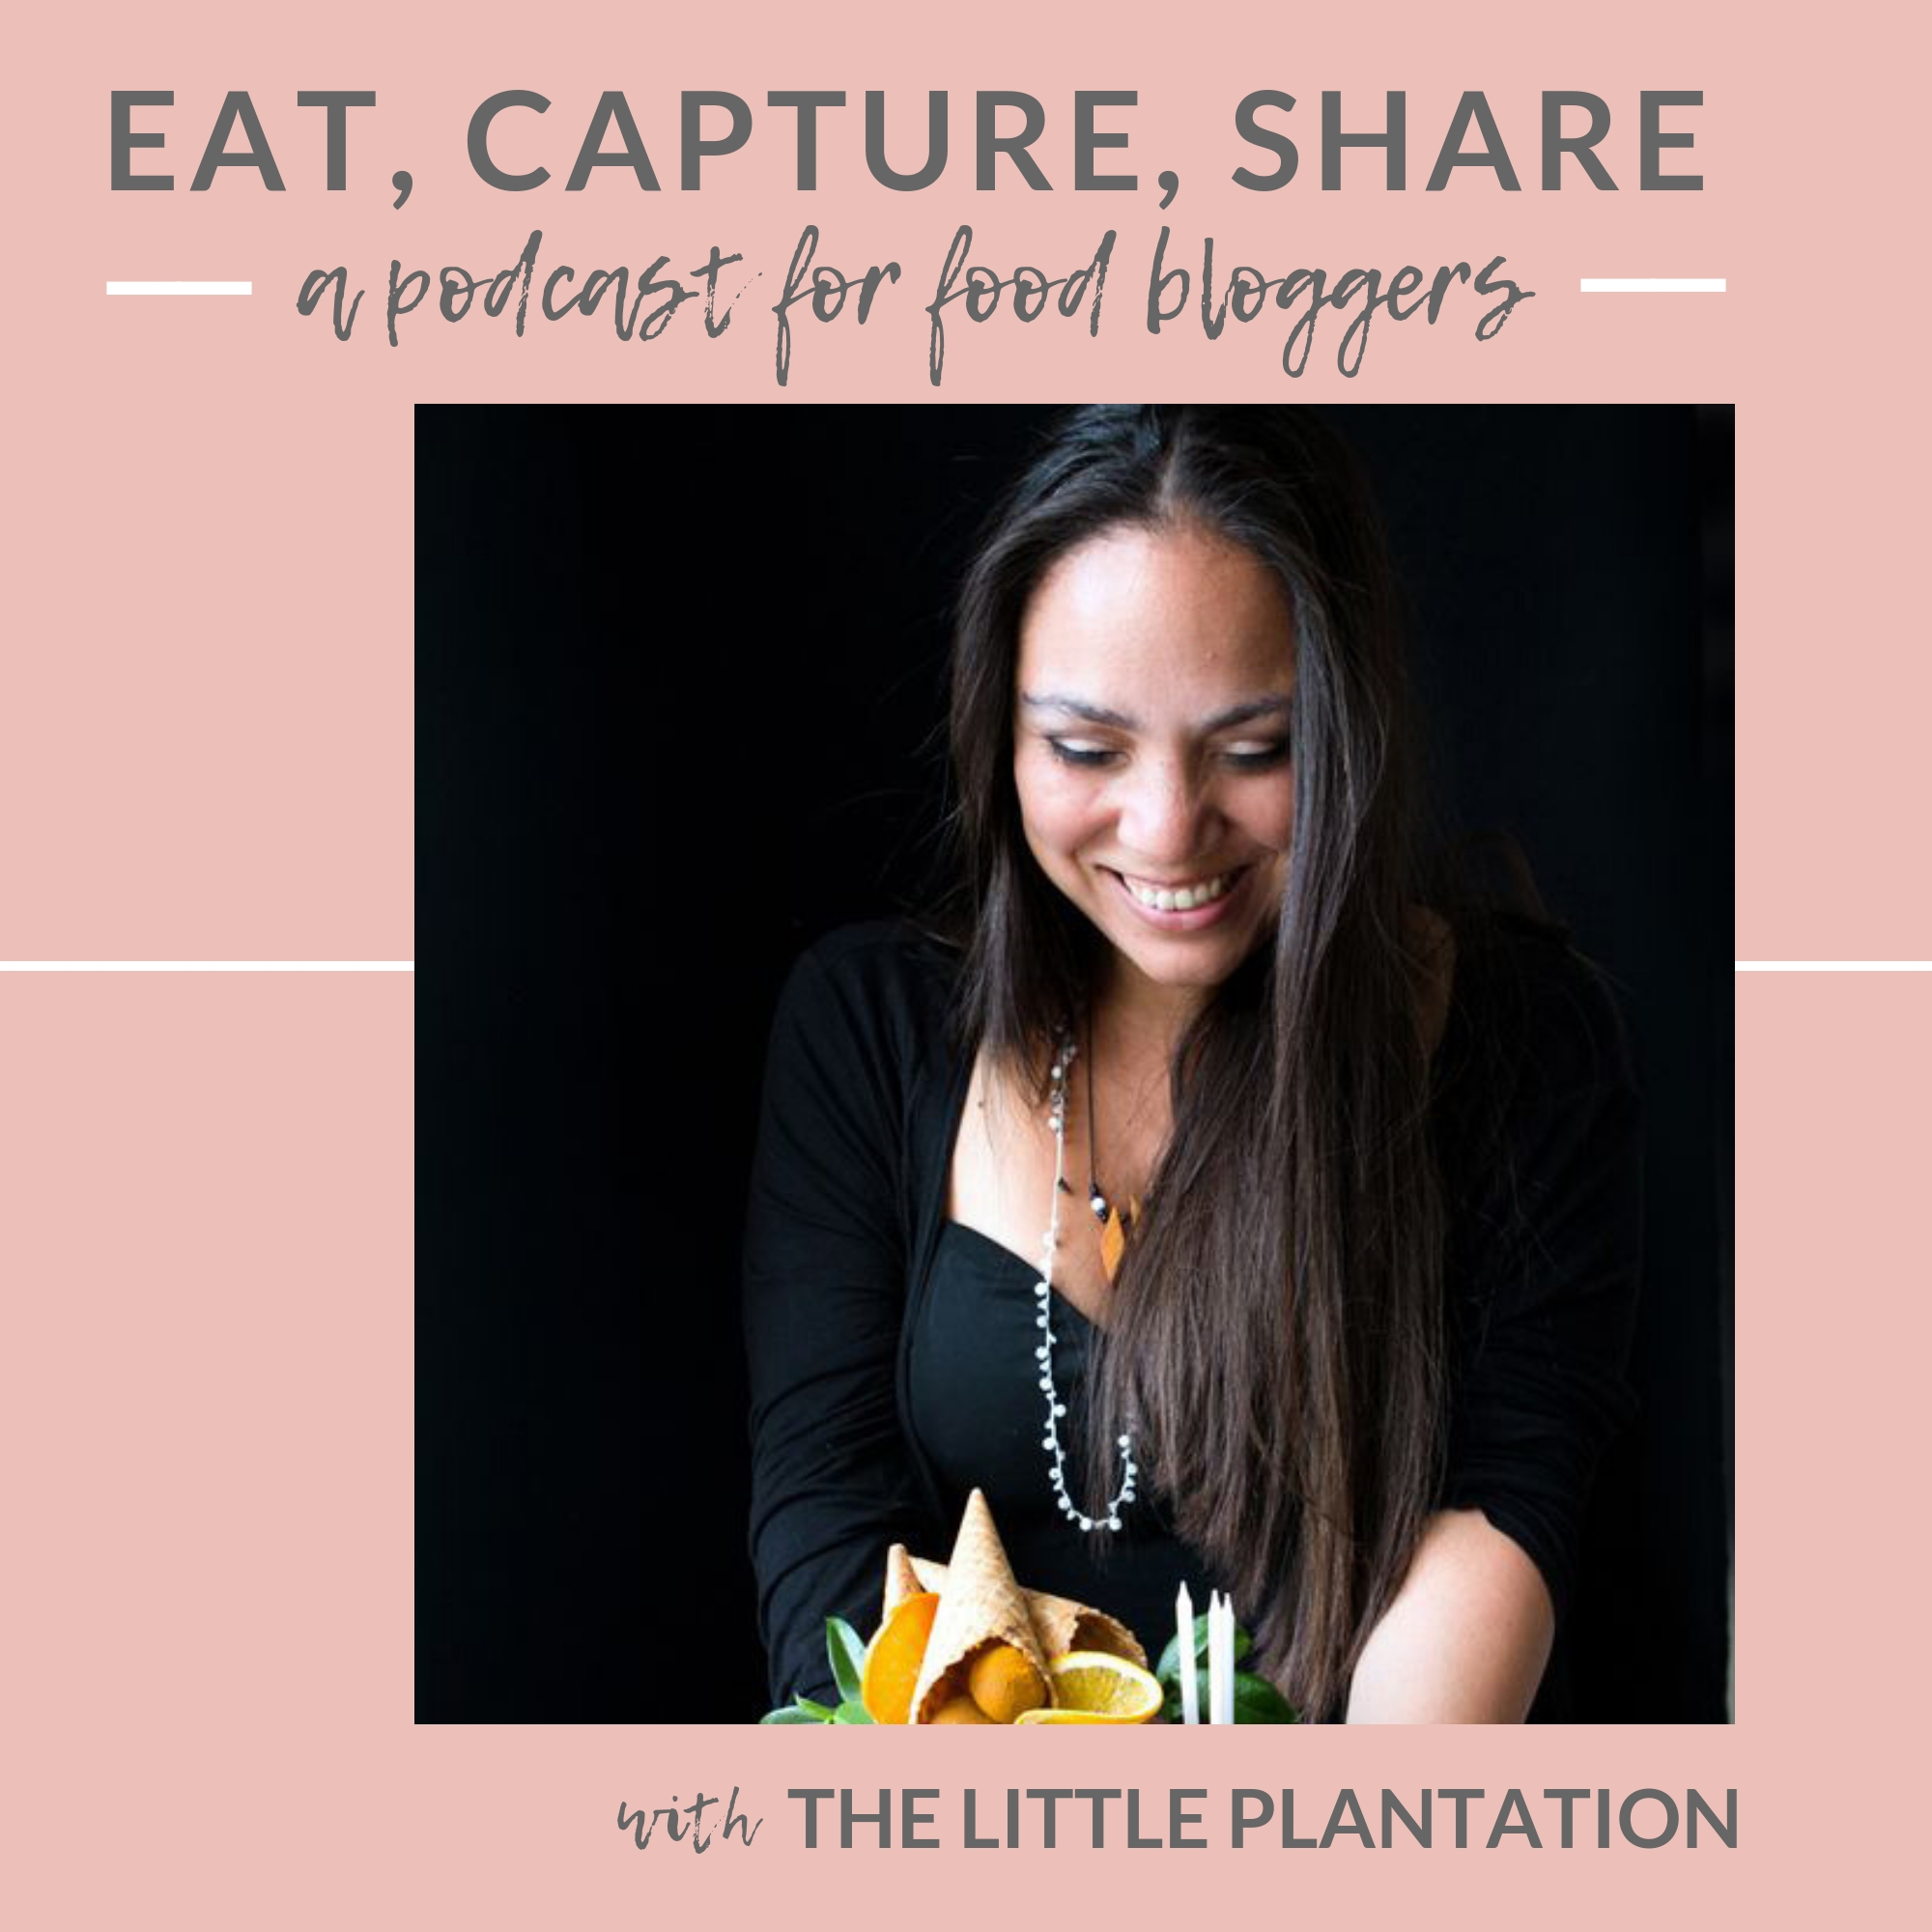 eat, Capture, Share podcast for food bloggers with the Little Plantation